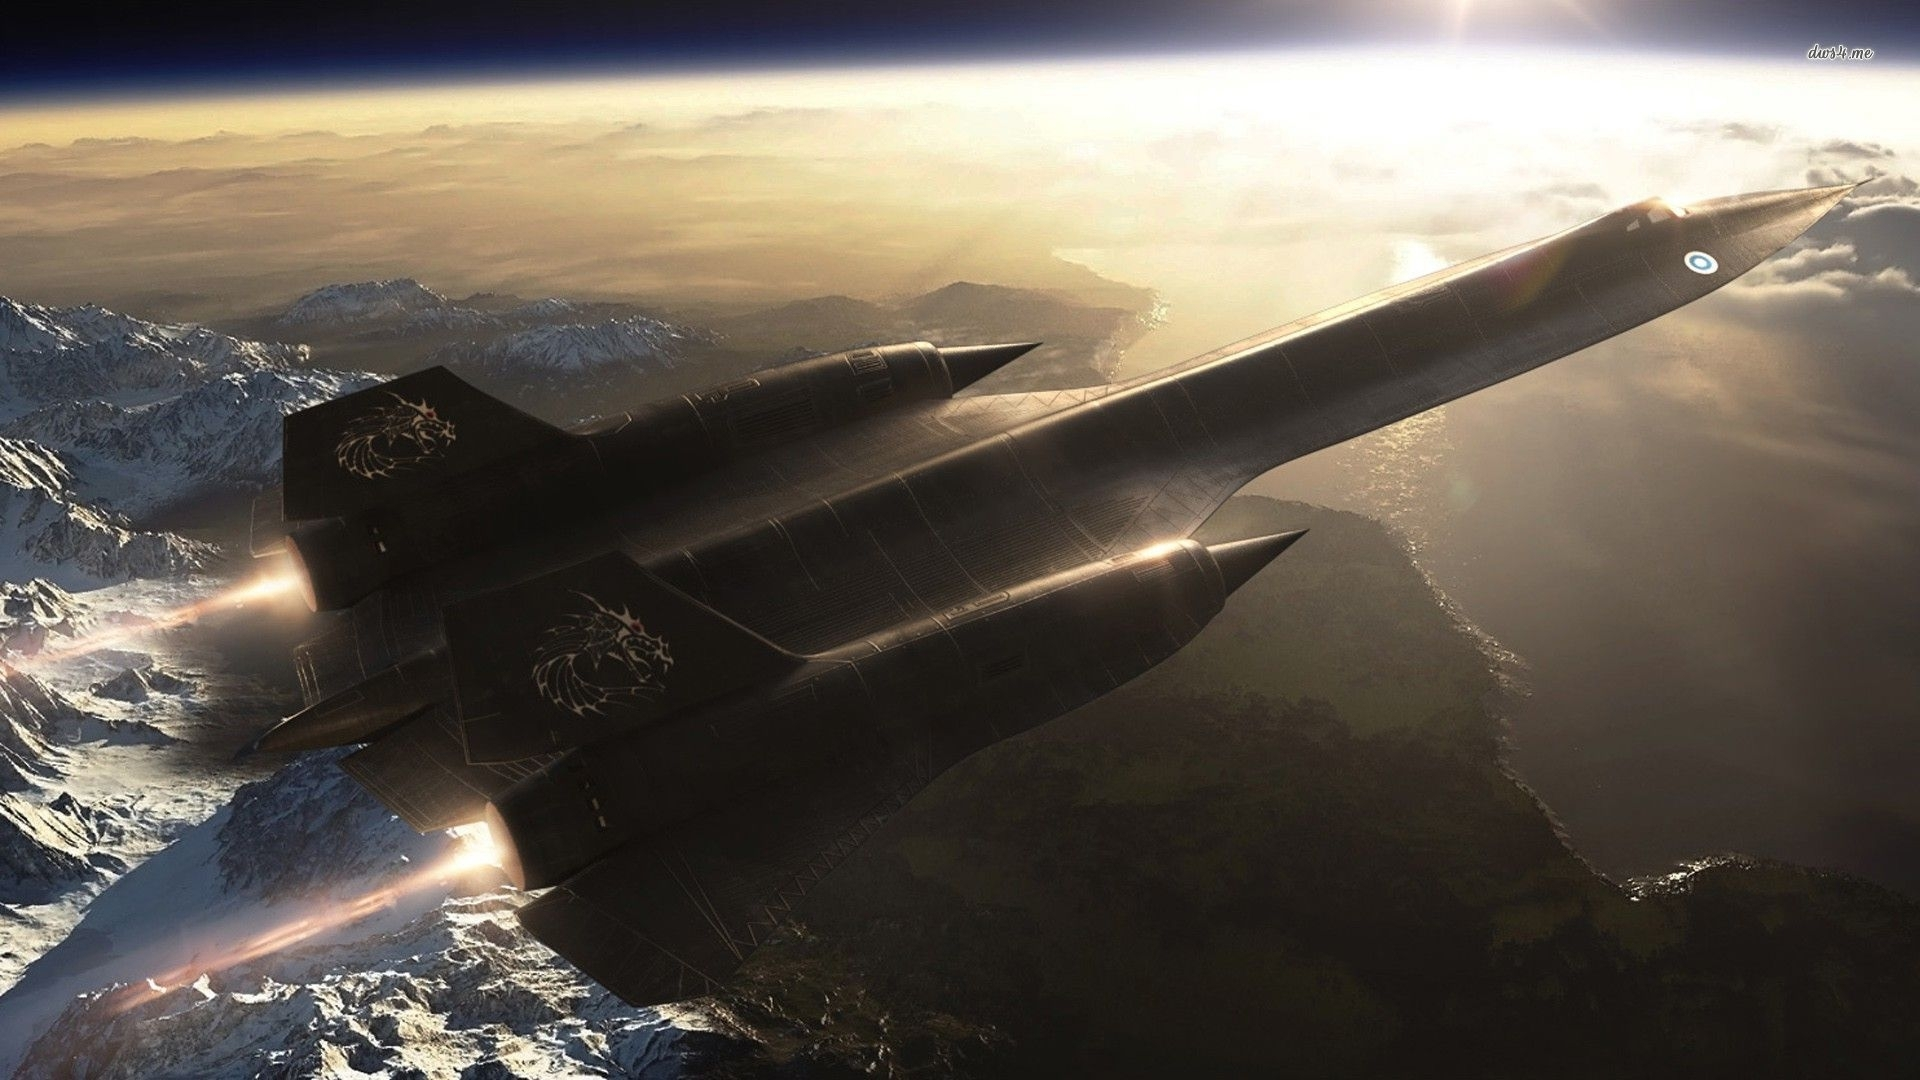 lockheed sr-71 blackbird wallpaper - aircraft wallpapers